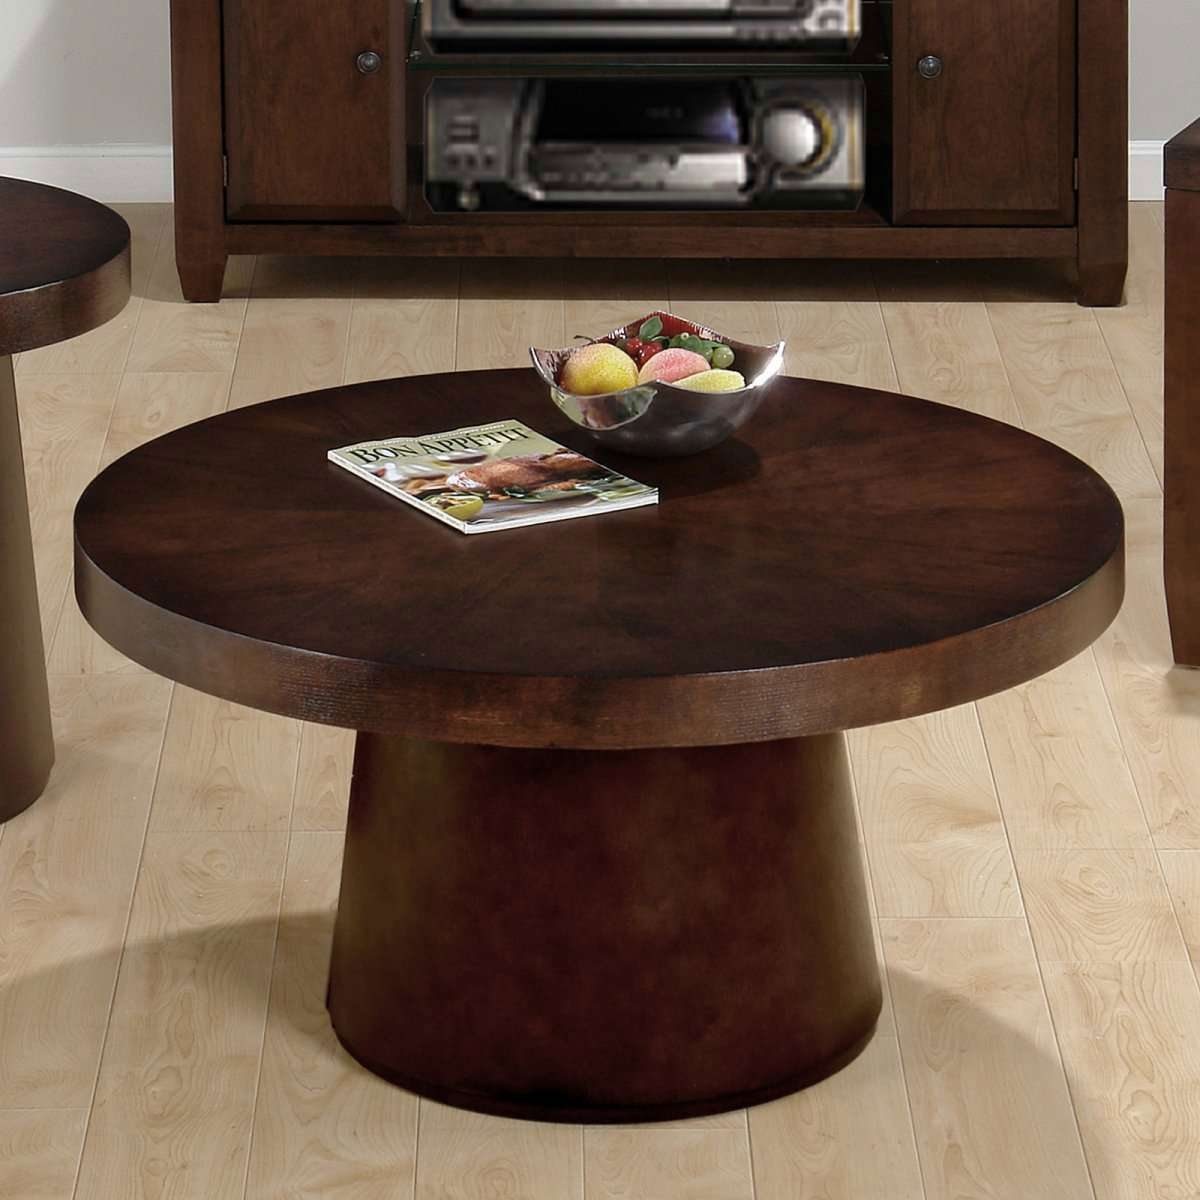 Glamorous Small Round Coffee Table Wood – Round Coffee Table Regarding Widely Used Dark Wood Round Coffee Tables (View 2 of 20)